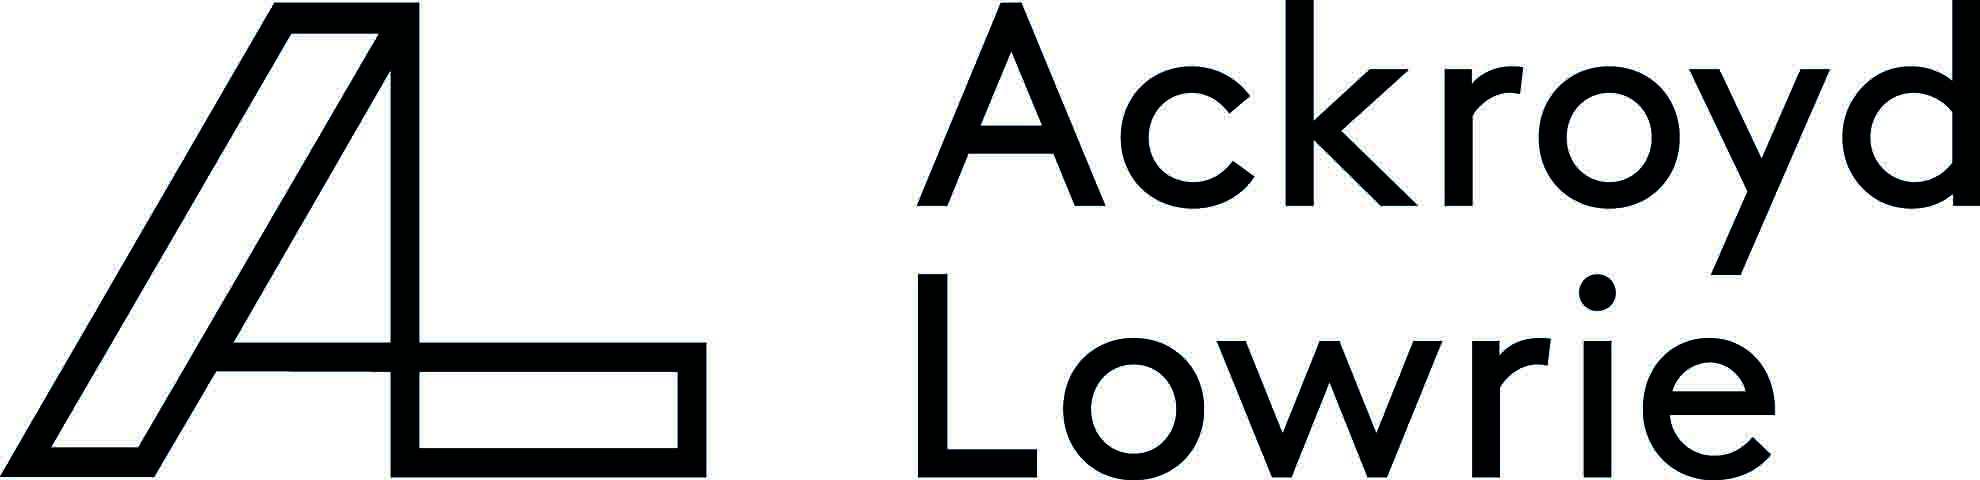 AckroydLowrie_Logo_Linear_Black copy.jpg